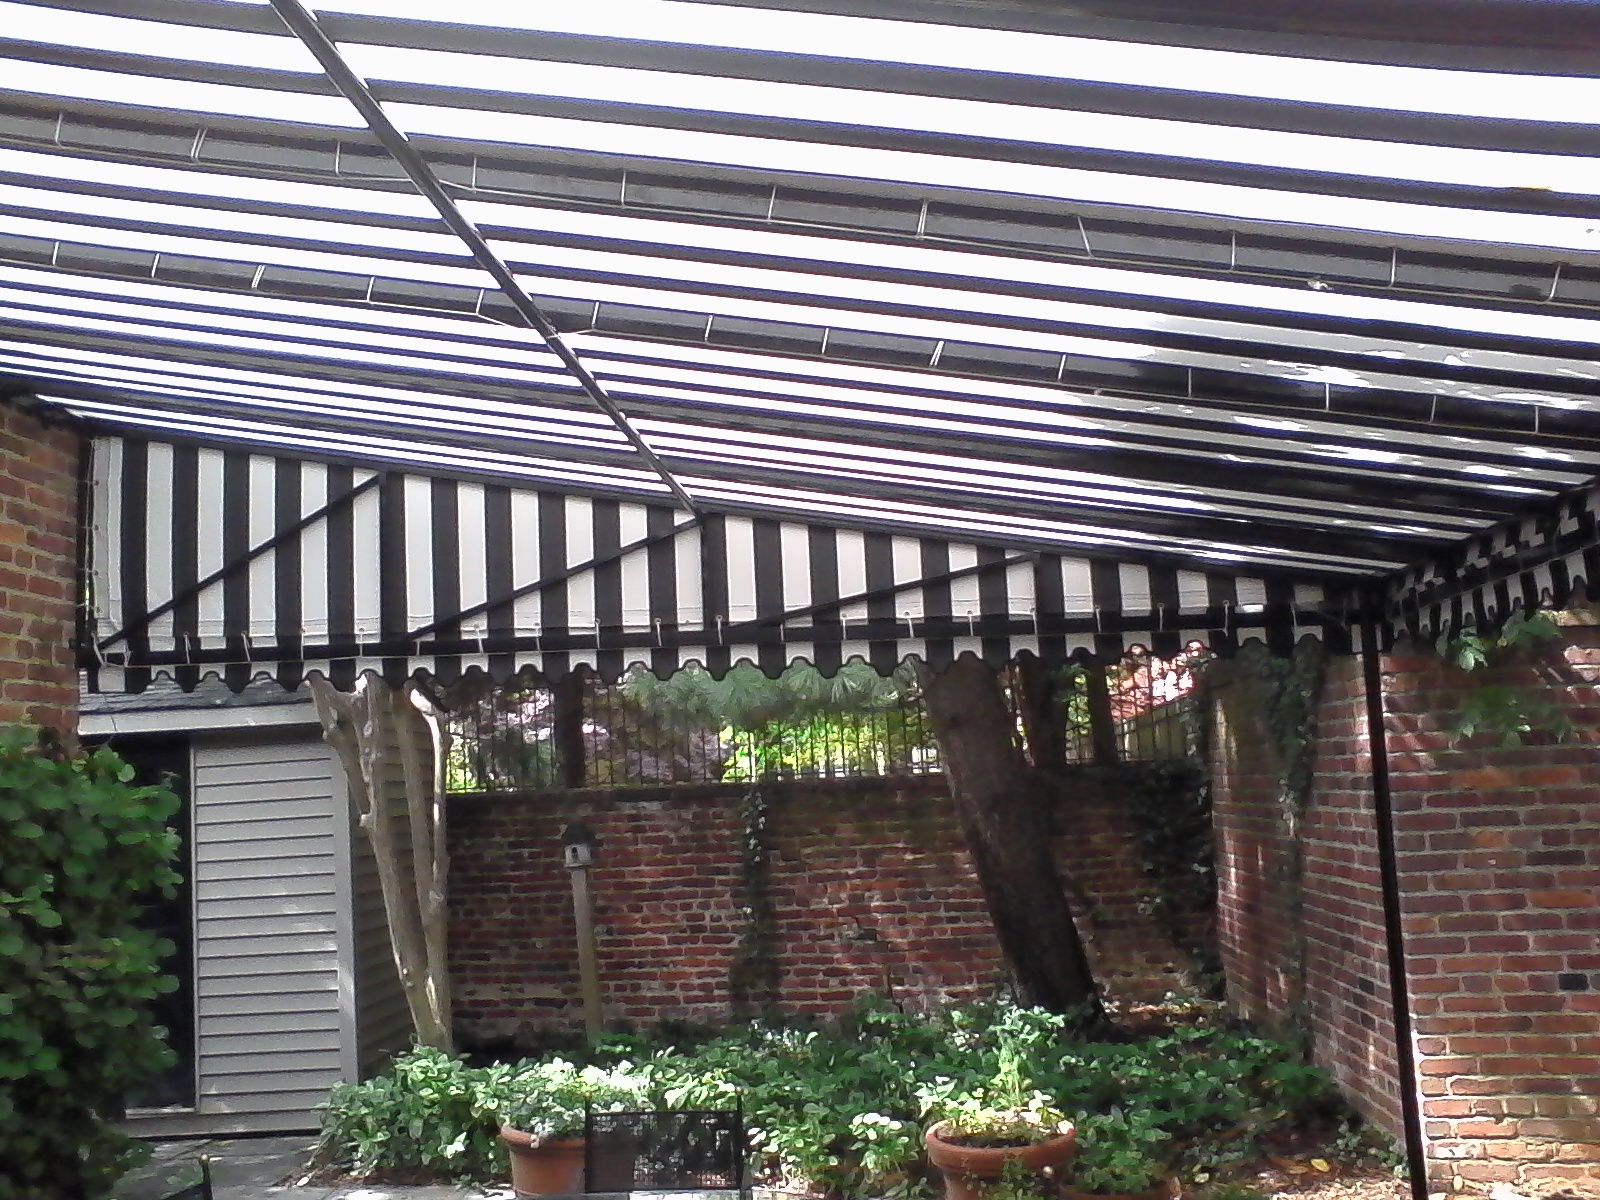 Stunning Black and White Striped Patio Awning